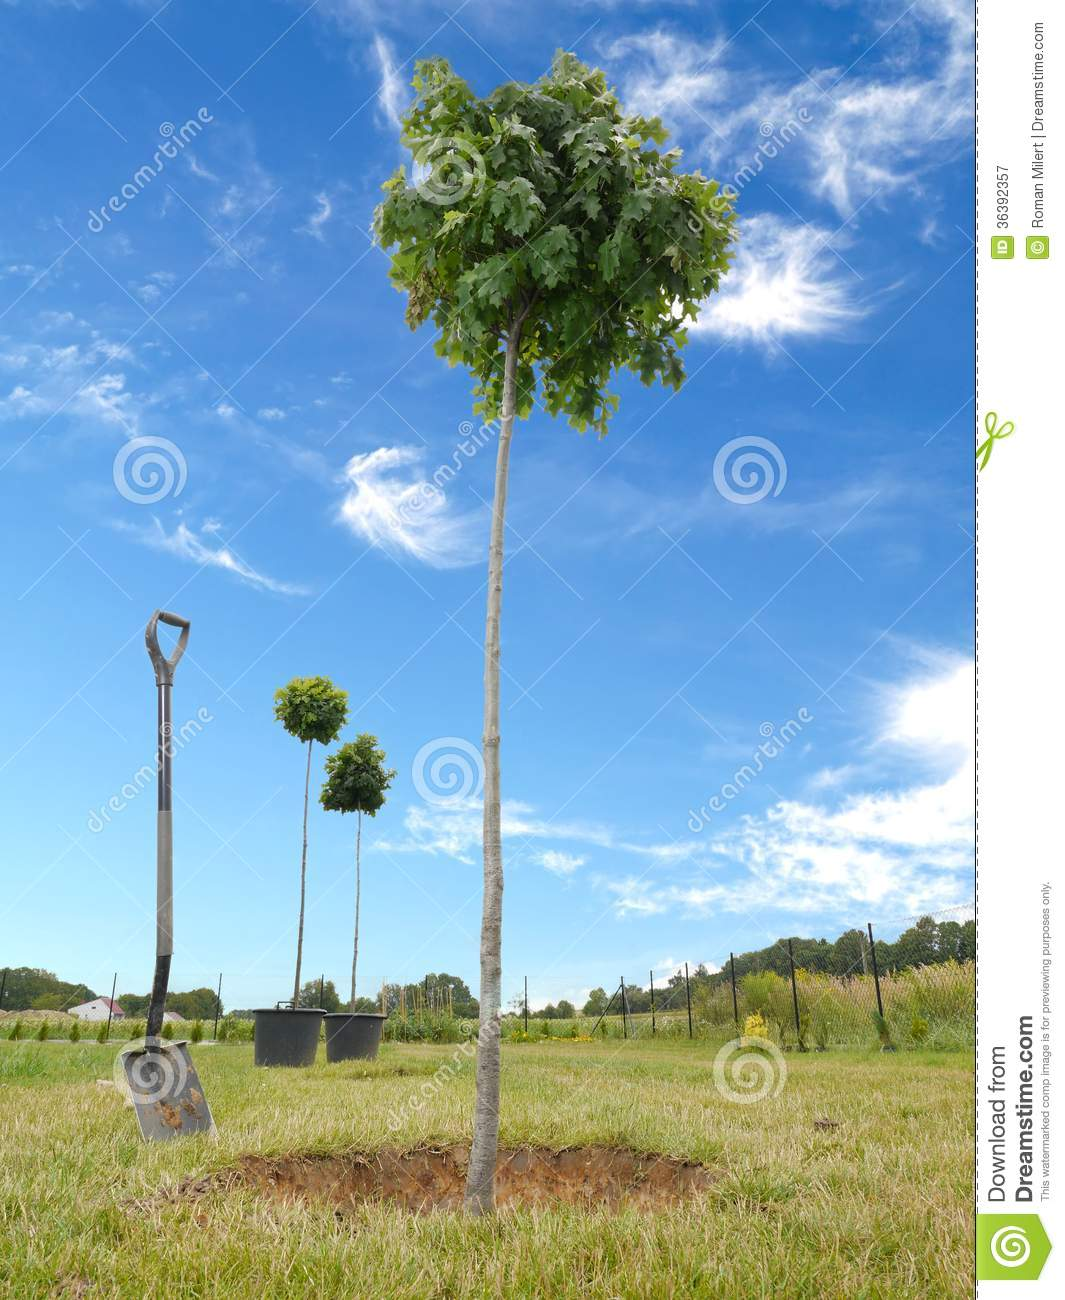 Planting An Oak Tree Best Time : Tree planting three oak trees being planted ground g